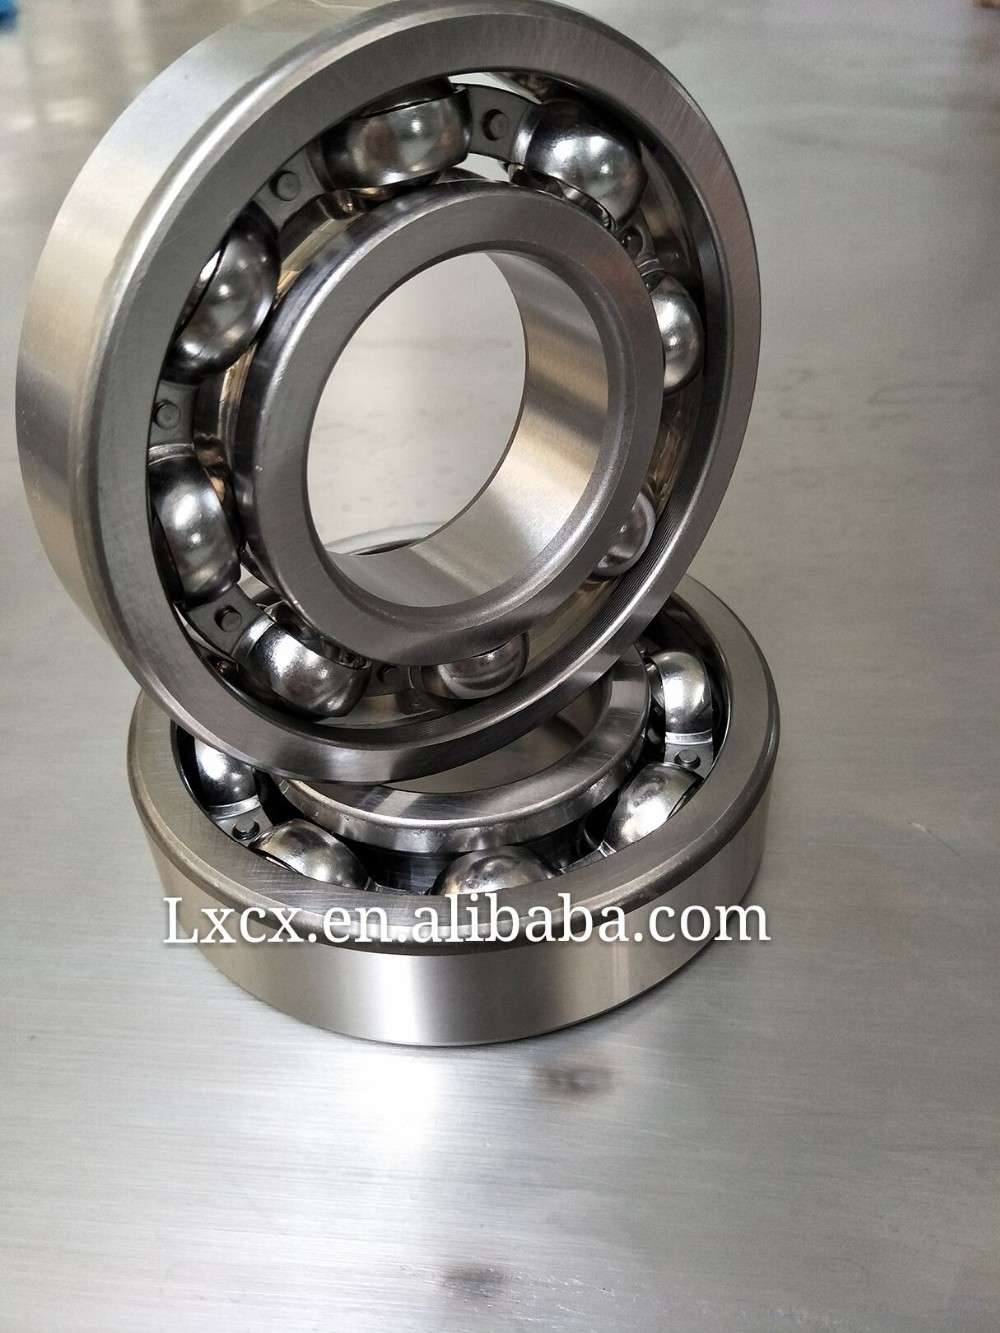 Quality bearing deep groove ball bearing 6321 (105*225*49mm)OPEN Z ZZ N RZ RS 2RZ 2RS